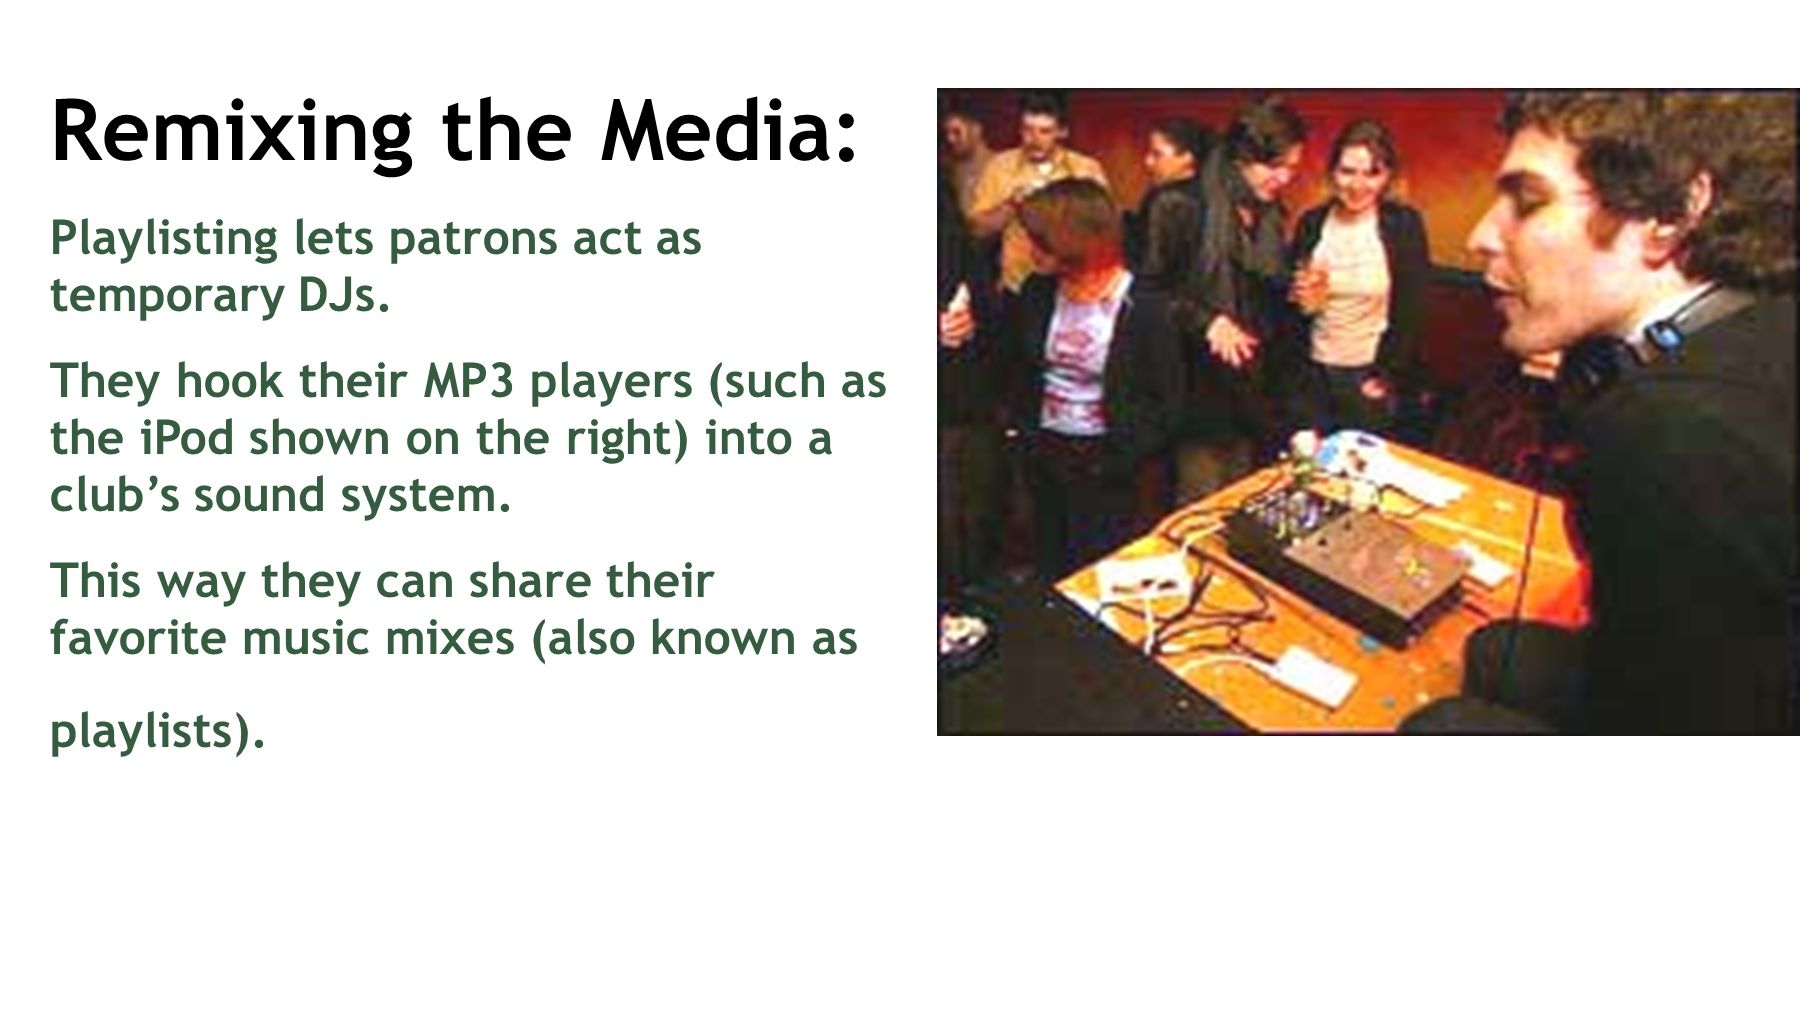 Remixing the Media: Playlisting lets patrons act as temporary DJs.